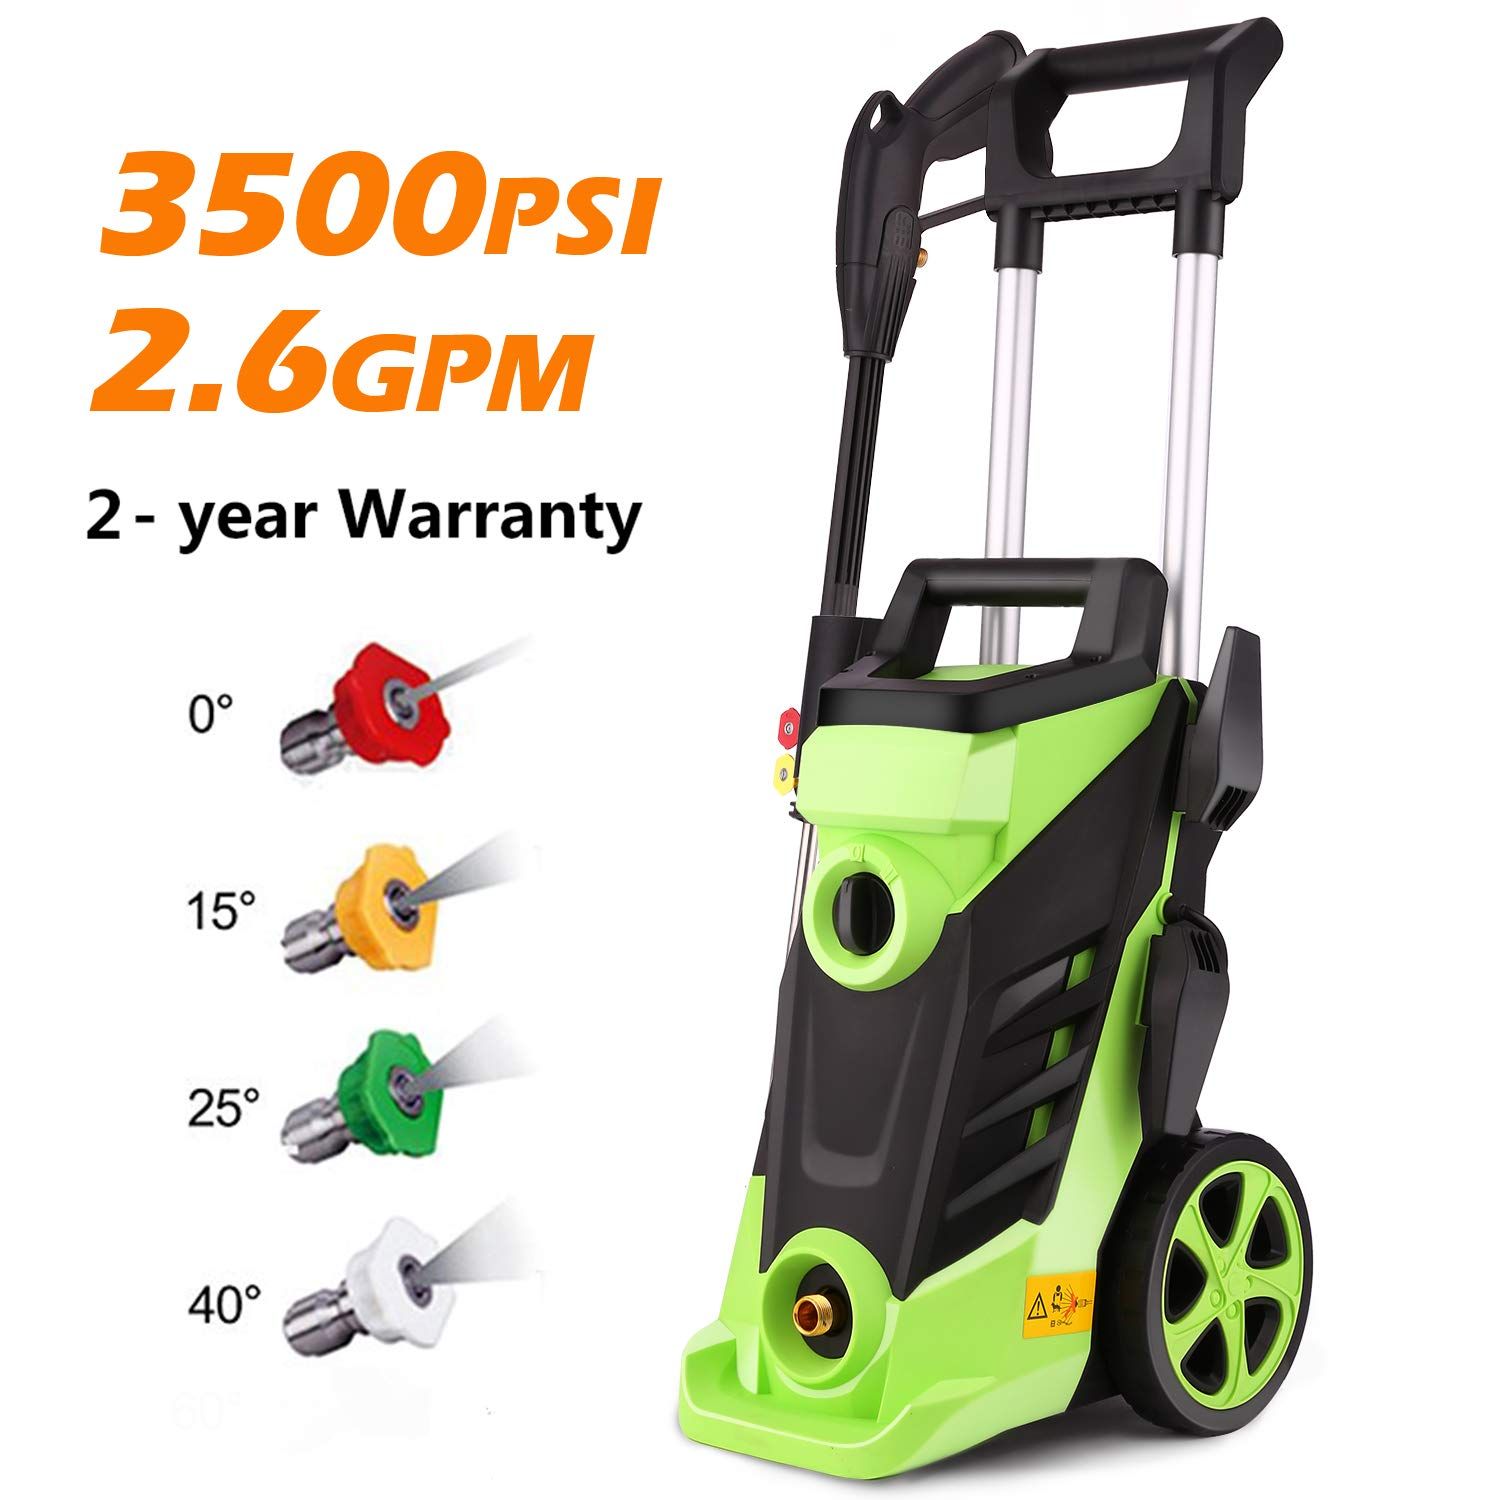 Homdox 3500 PSI Electric Pressure Washer, 2.60 GPM 1800W Professional Power Washer with 4 Nozzles